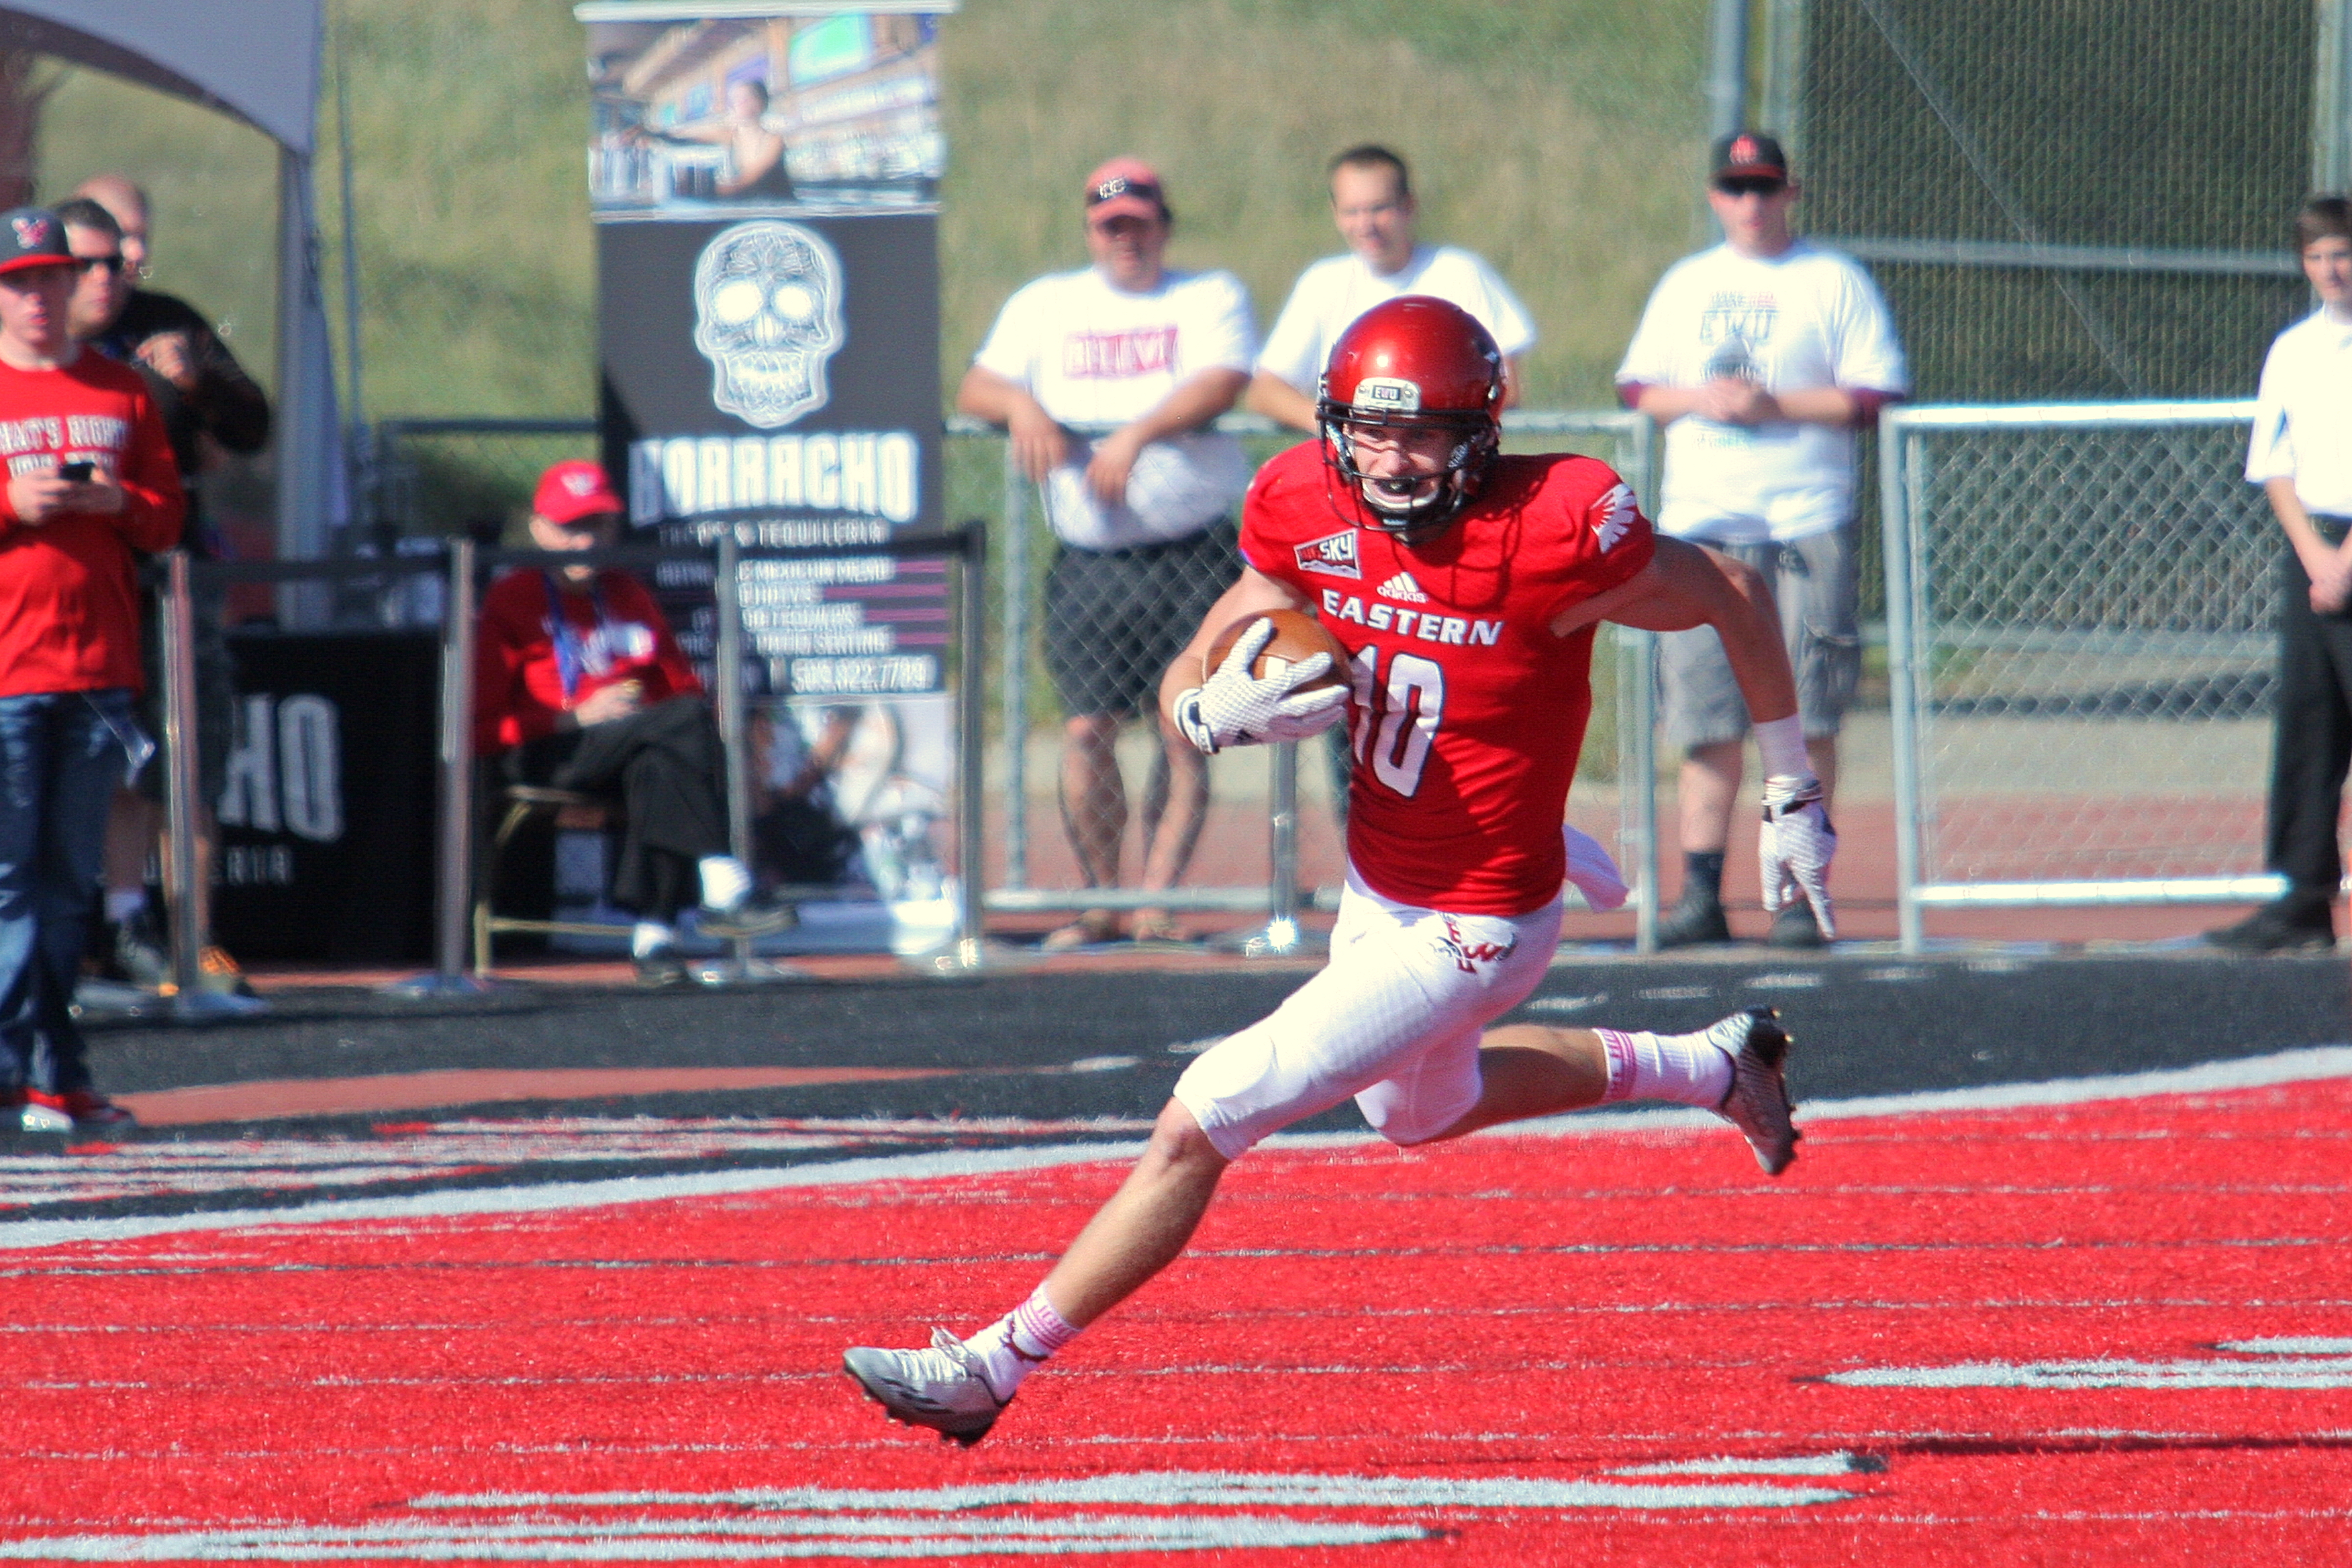 How will Cooper Kupp perform at the 2017 NFL Combine?